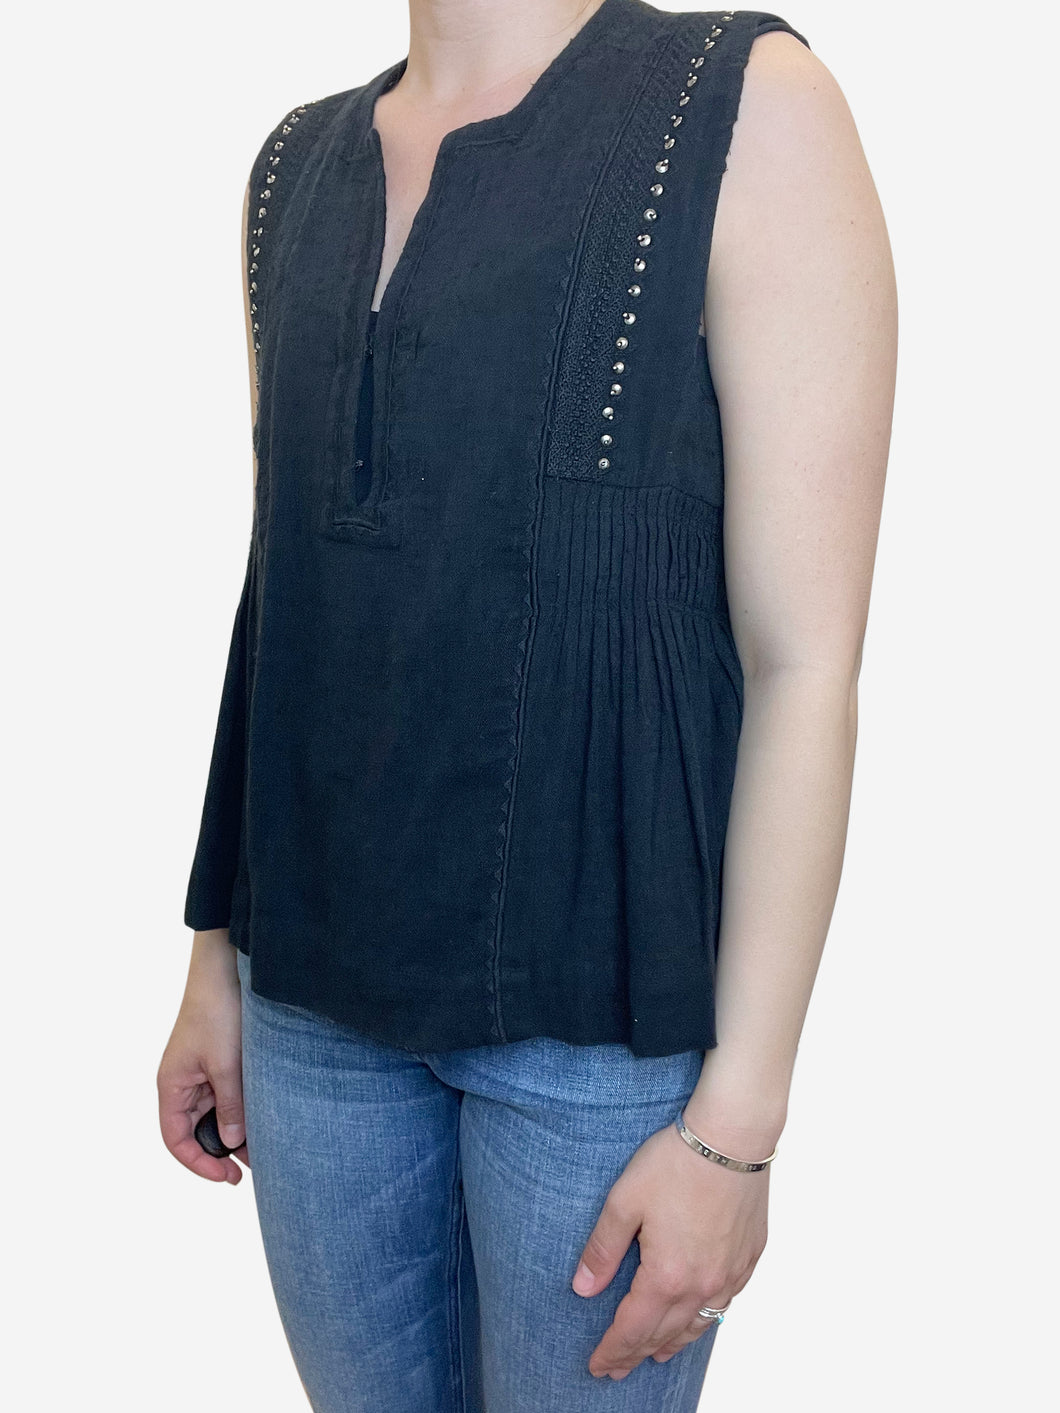 Black sleeveless blouse top - size UK 10